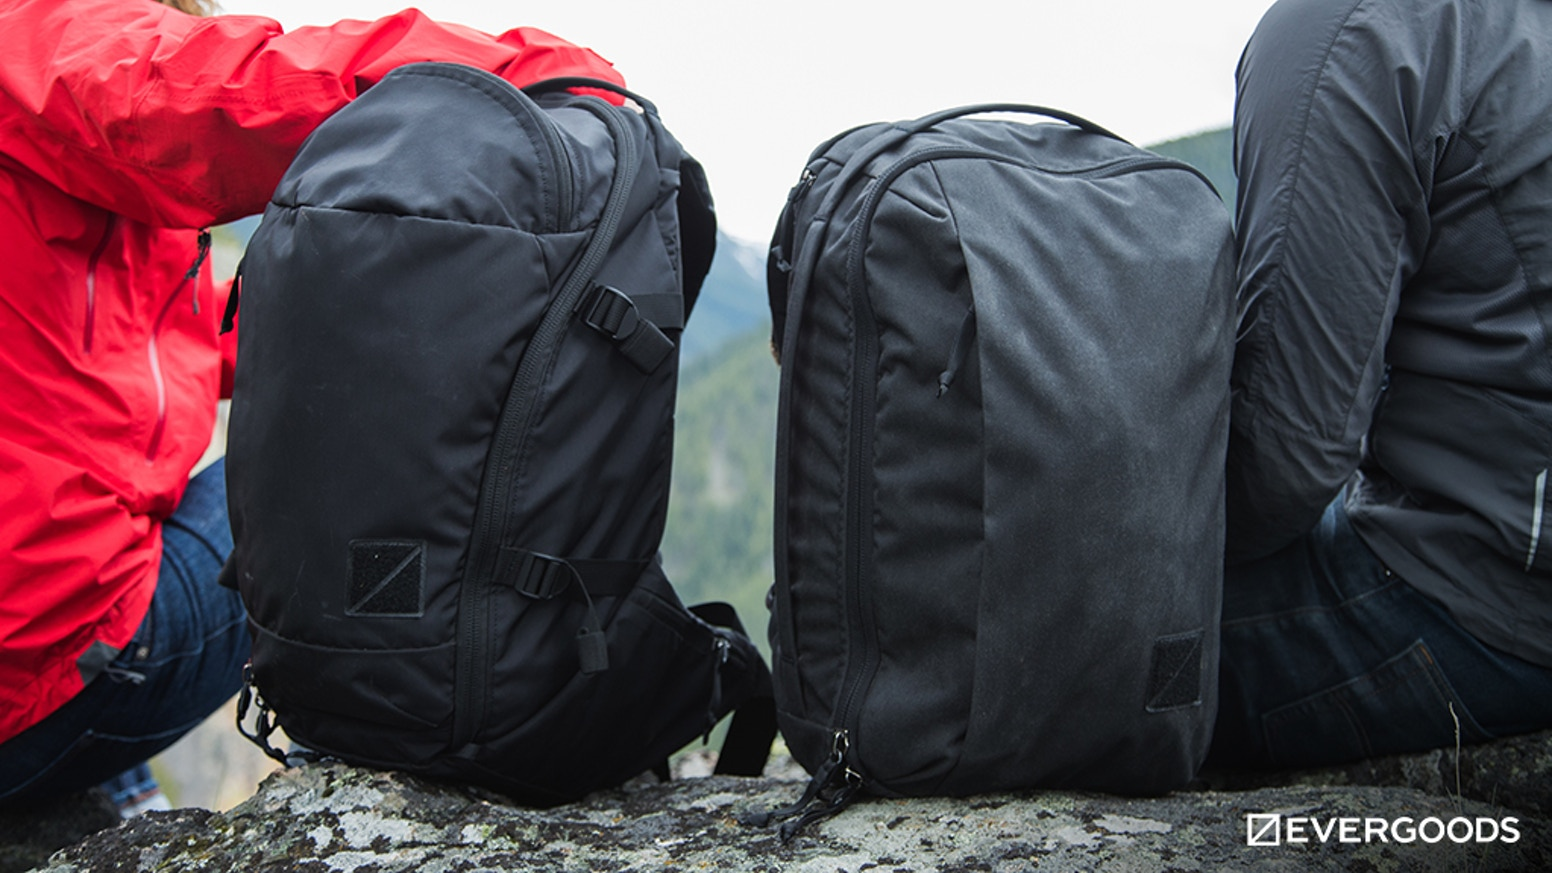 Crossover Backpacks | Blurring the Line Between Outdoors and Everyday.